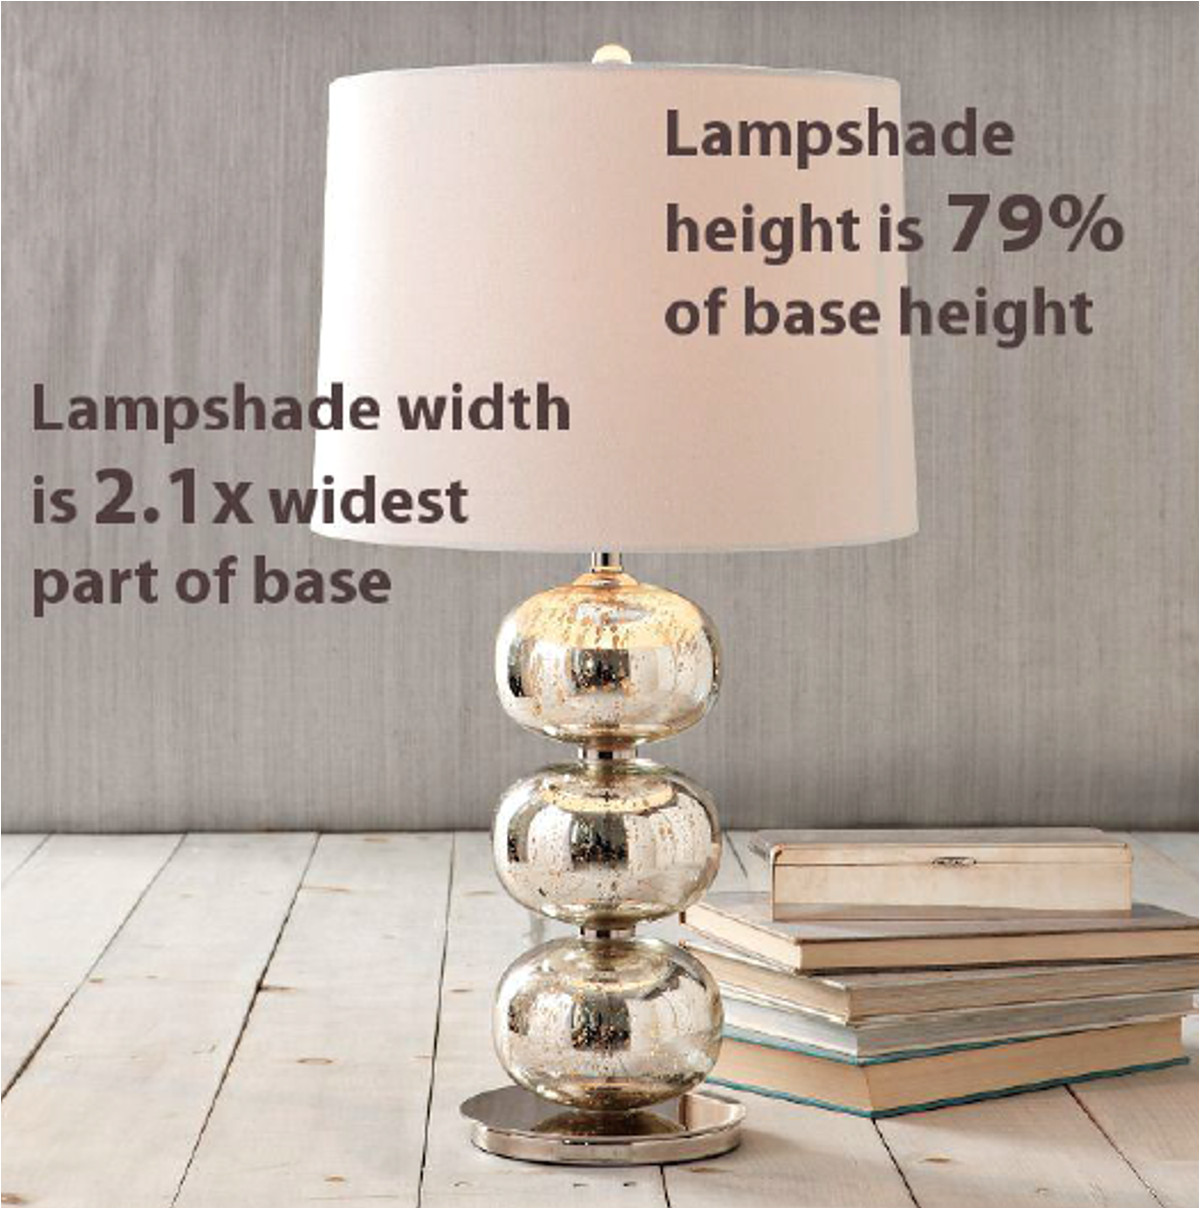 for floor lamps the height of the shade should be between 30 and 50 of the height of the lamp base for example a floor lamp base that s 60 inches high